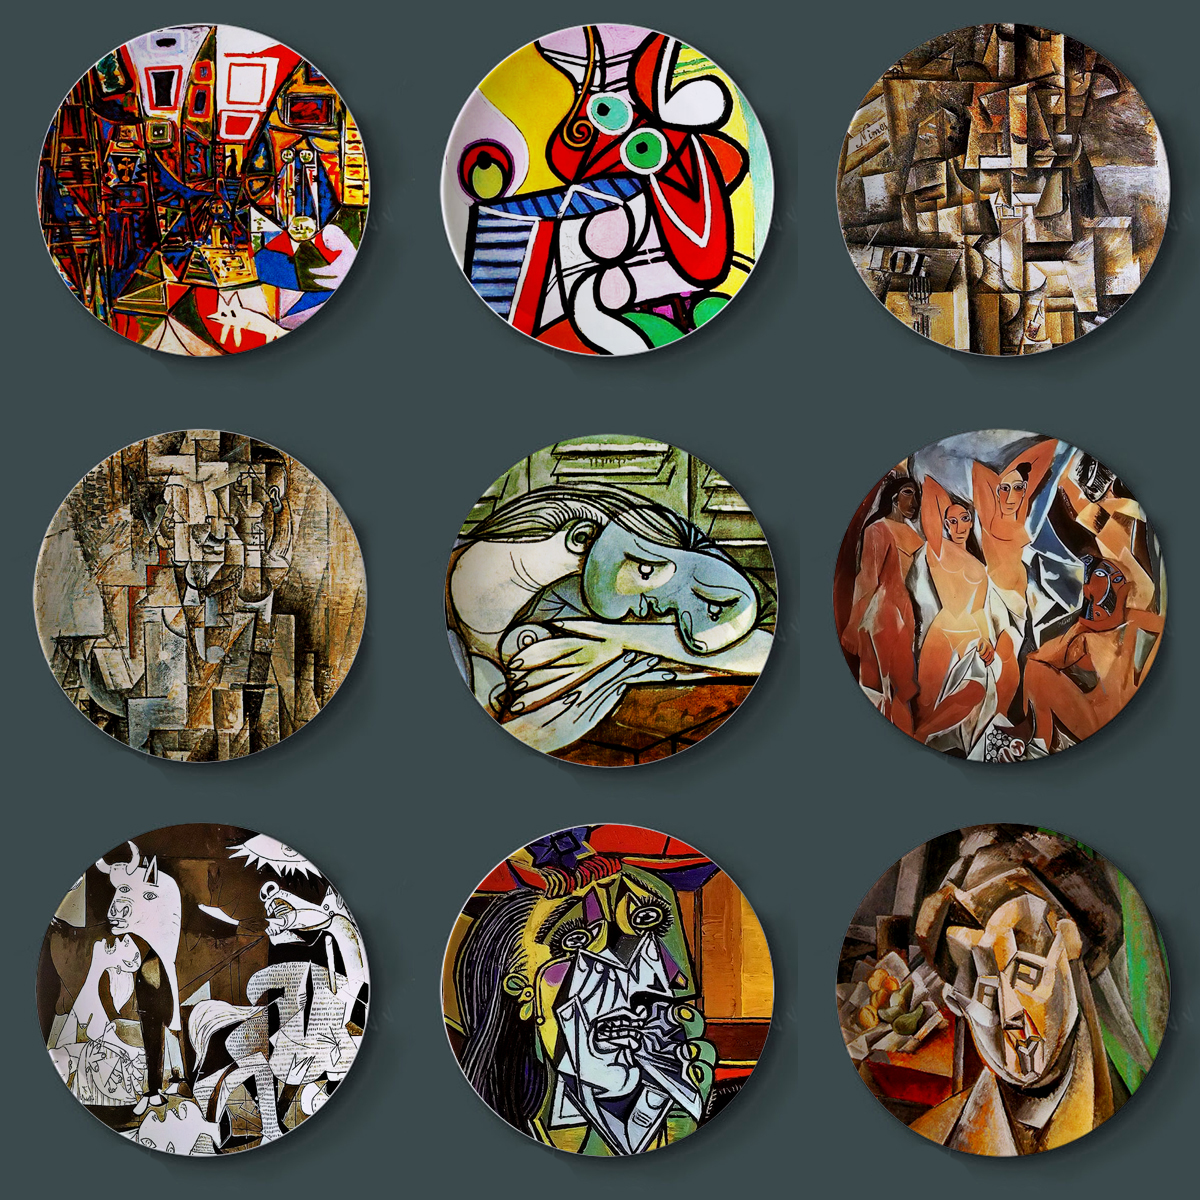 New Spanish Picasso Painting Plates For Home Wall Decor Abstract Watercolor Desk Display Ceramic Craft Round Colorful Plate